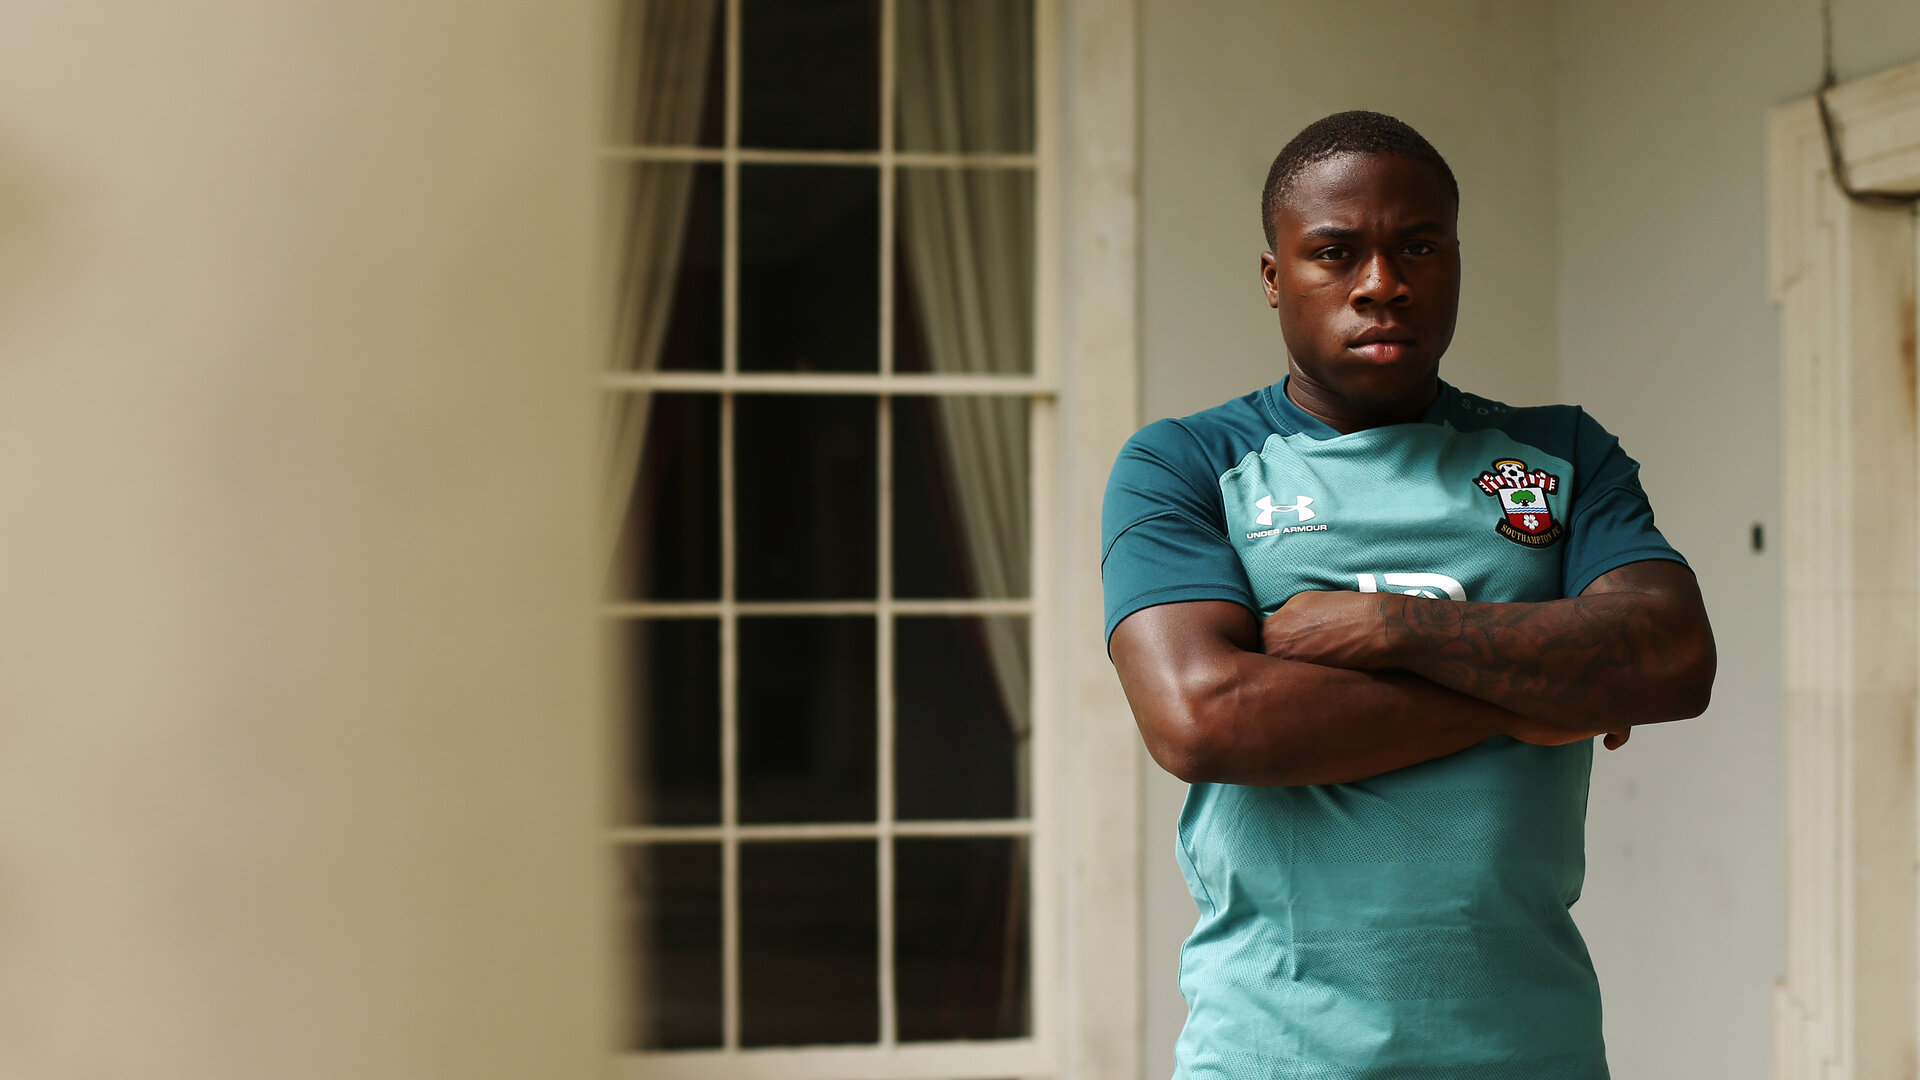 DUBLIN, ENGLAND - JULY 25: Michael Obafemi of Southampton FC during a feature photoshoot pictured at Carton House Spa and Resort for Pre-Season Training on July 24, 2019 in Southampton, England. (Photo by James Bridle - Southampton FC/Southampton FC via Getty Images)